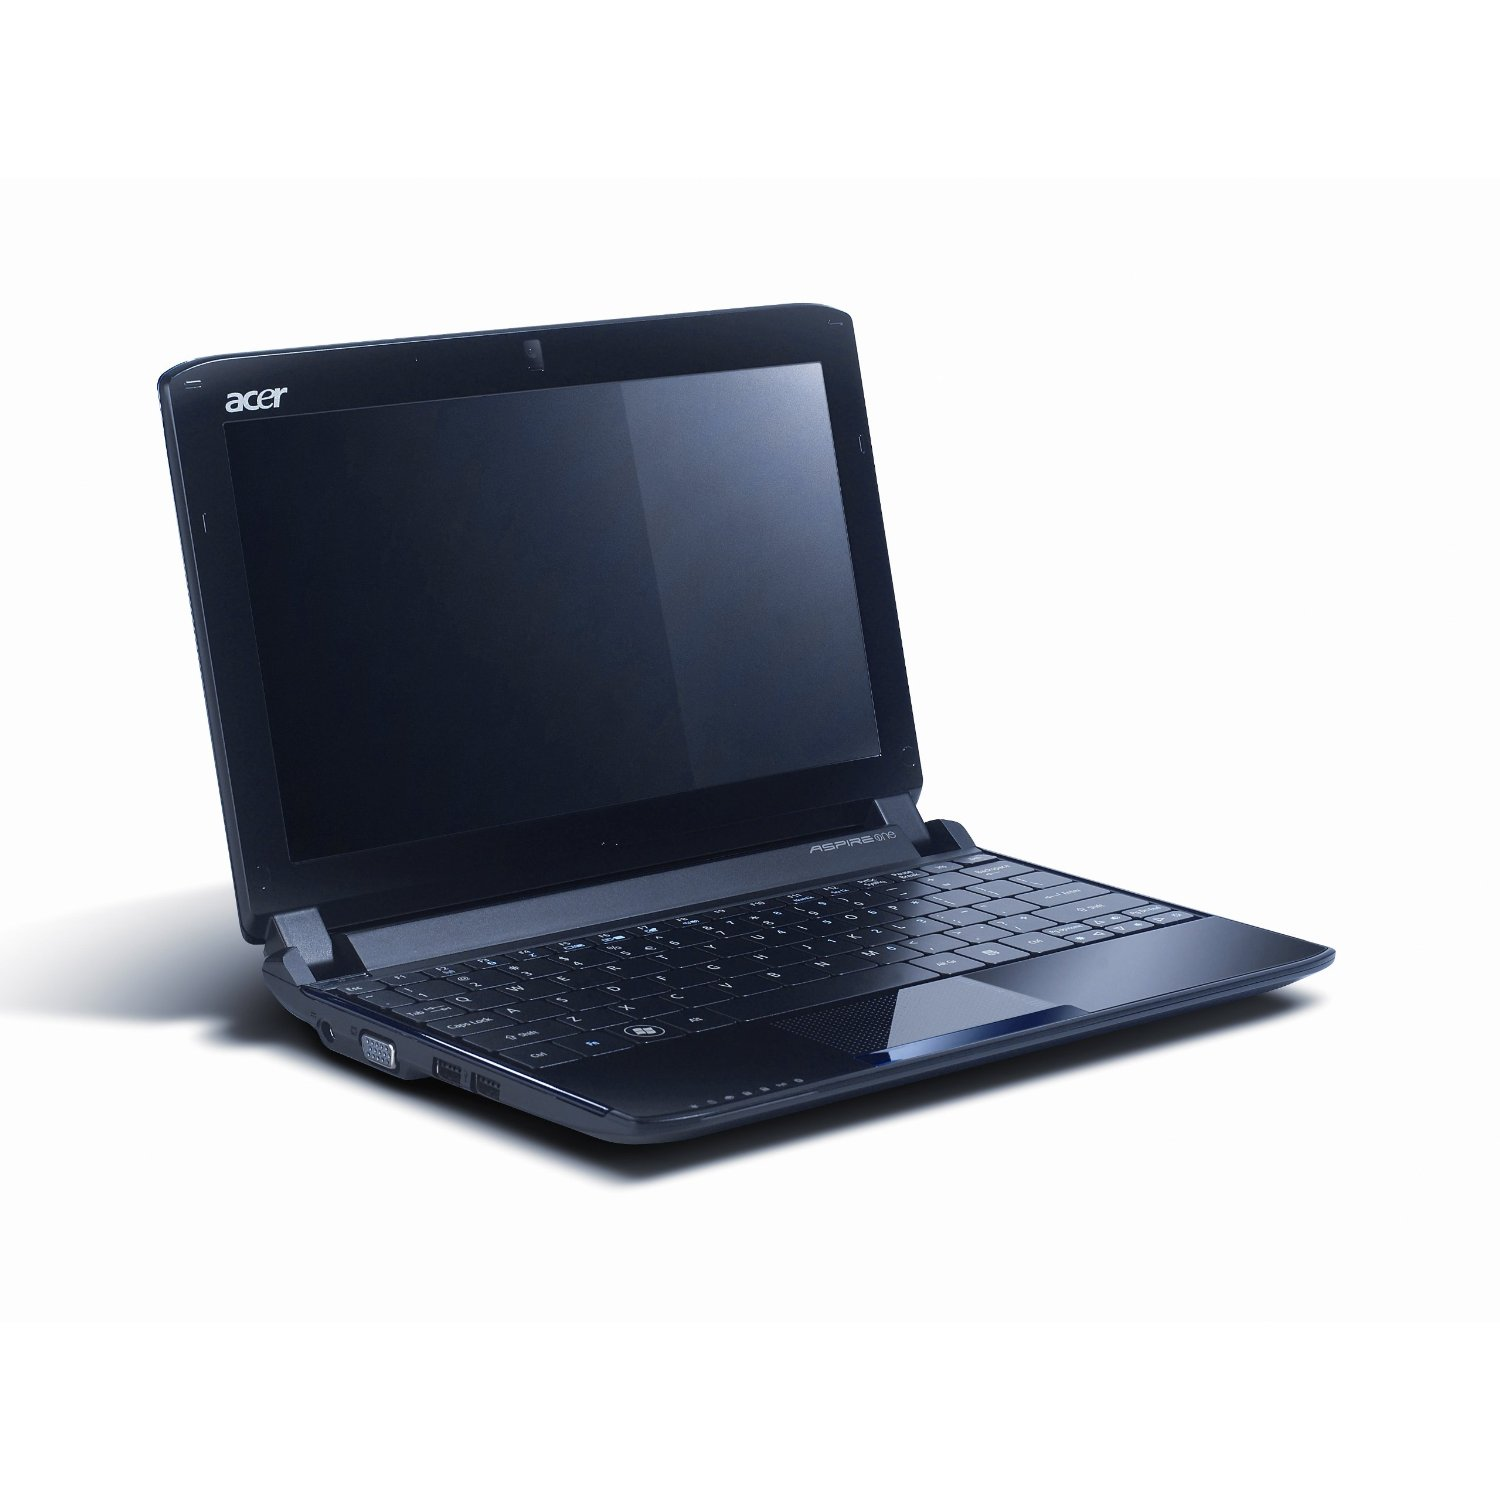 Netbook Acer Aspire One AO532h-2588 Spec